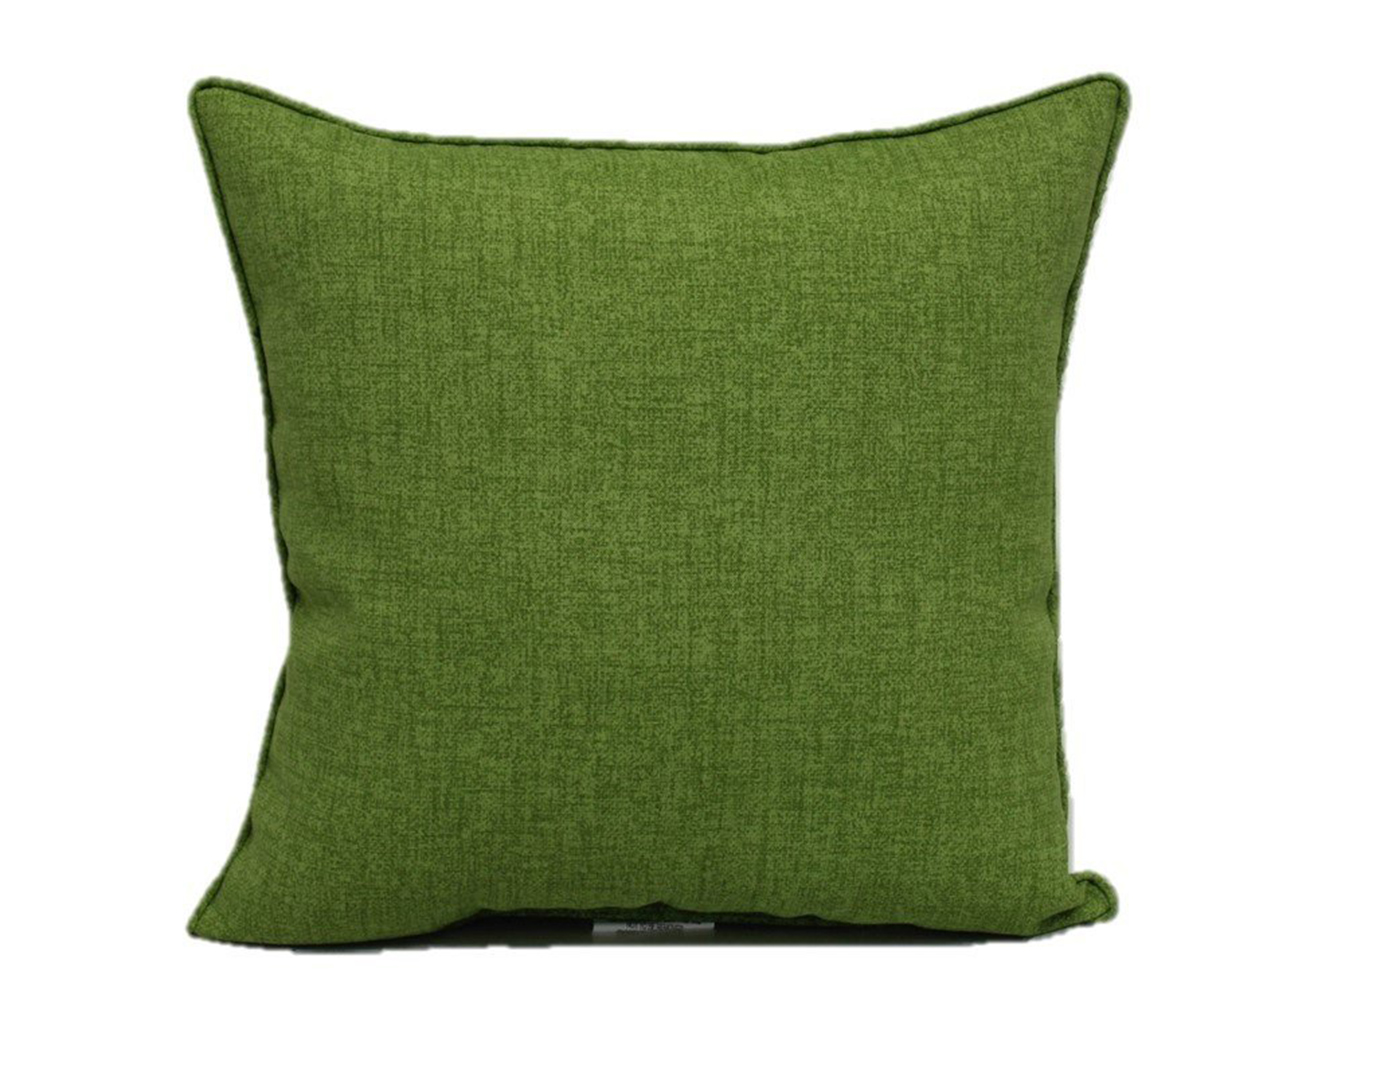 Kiwi Outdoor Pillow 17""